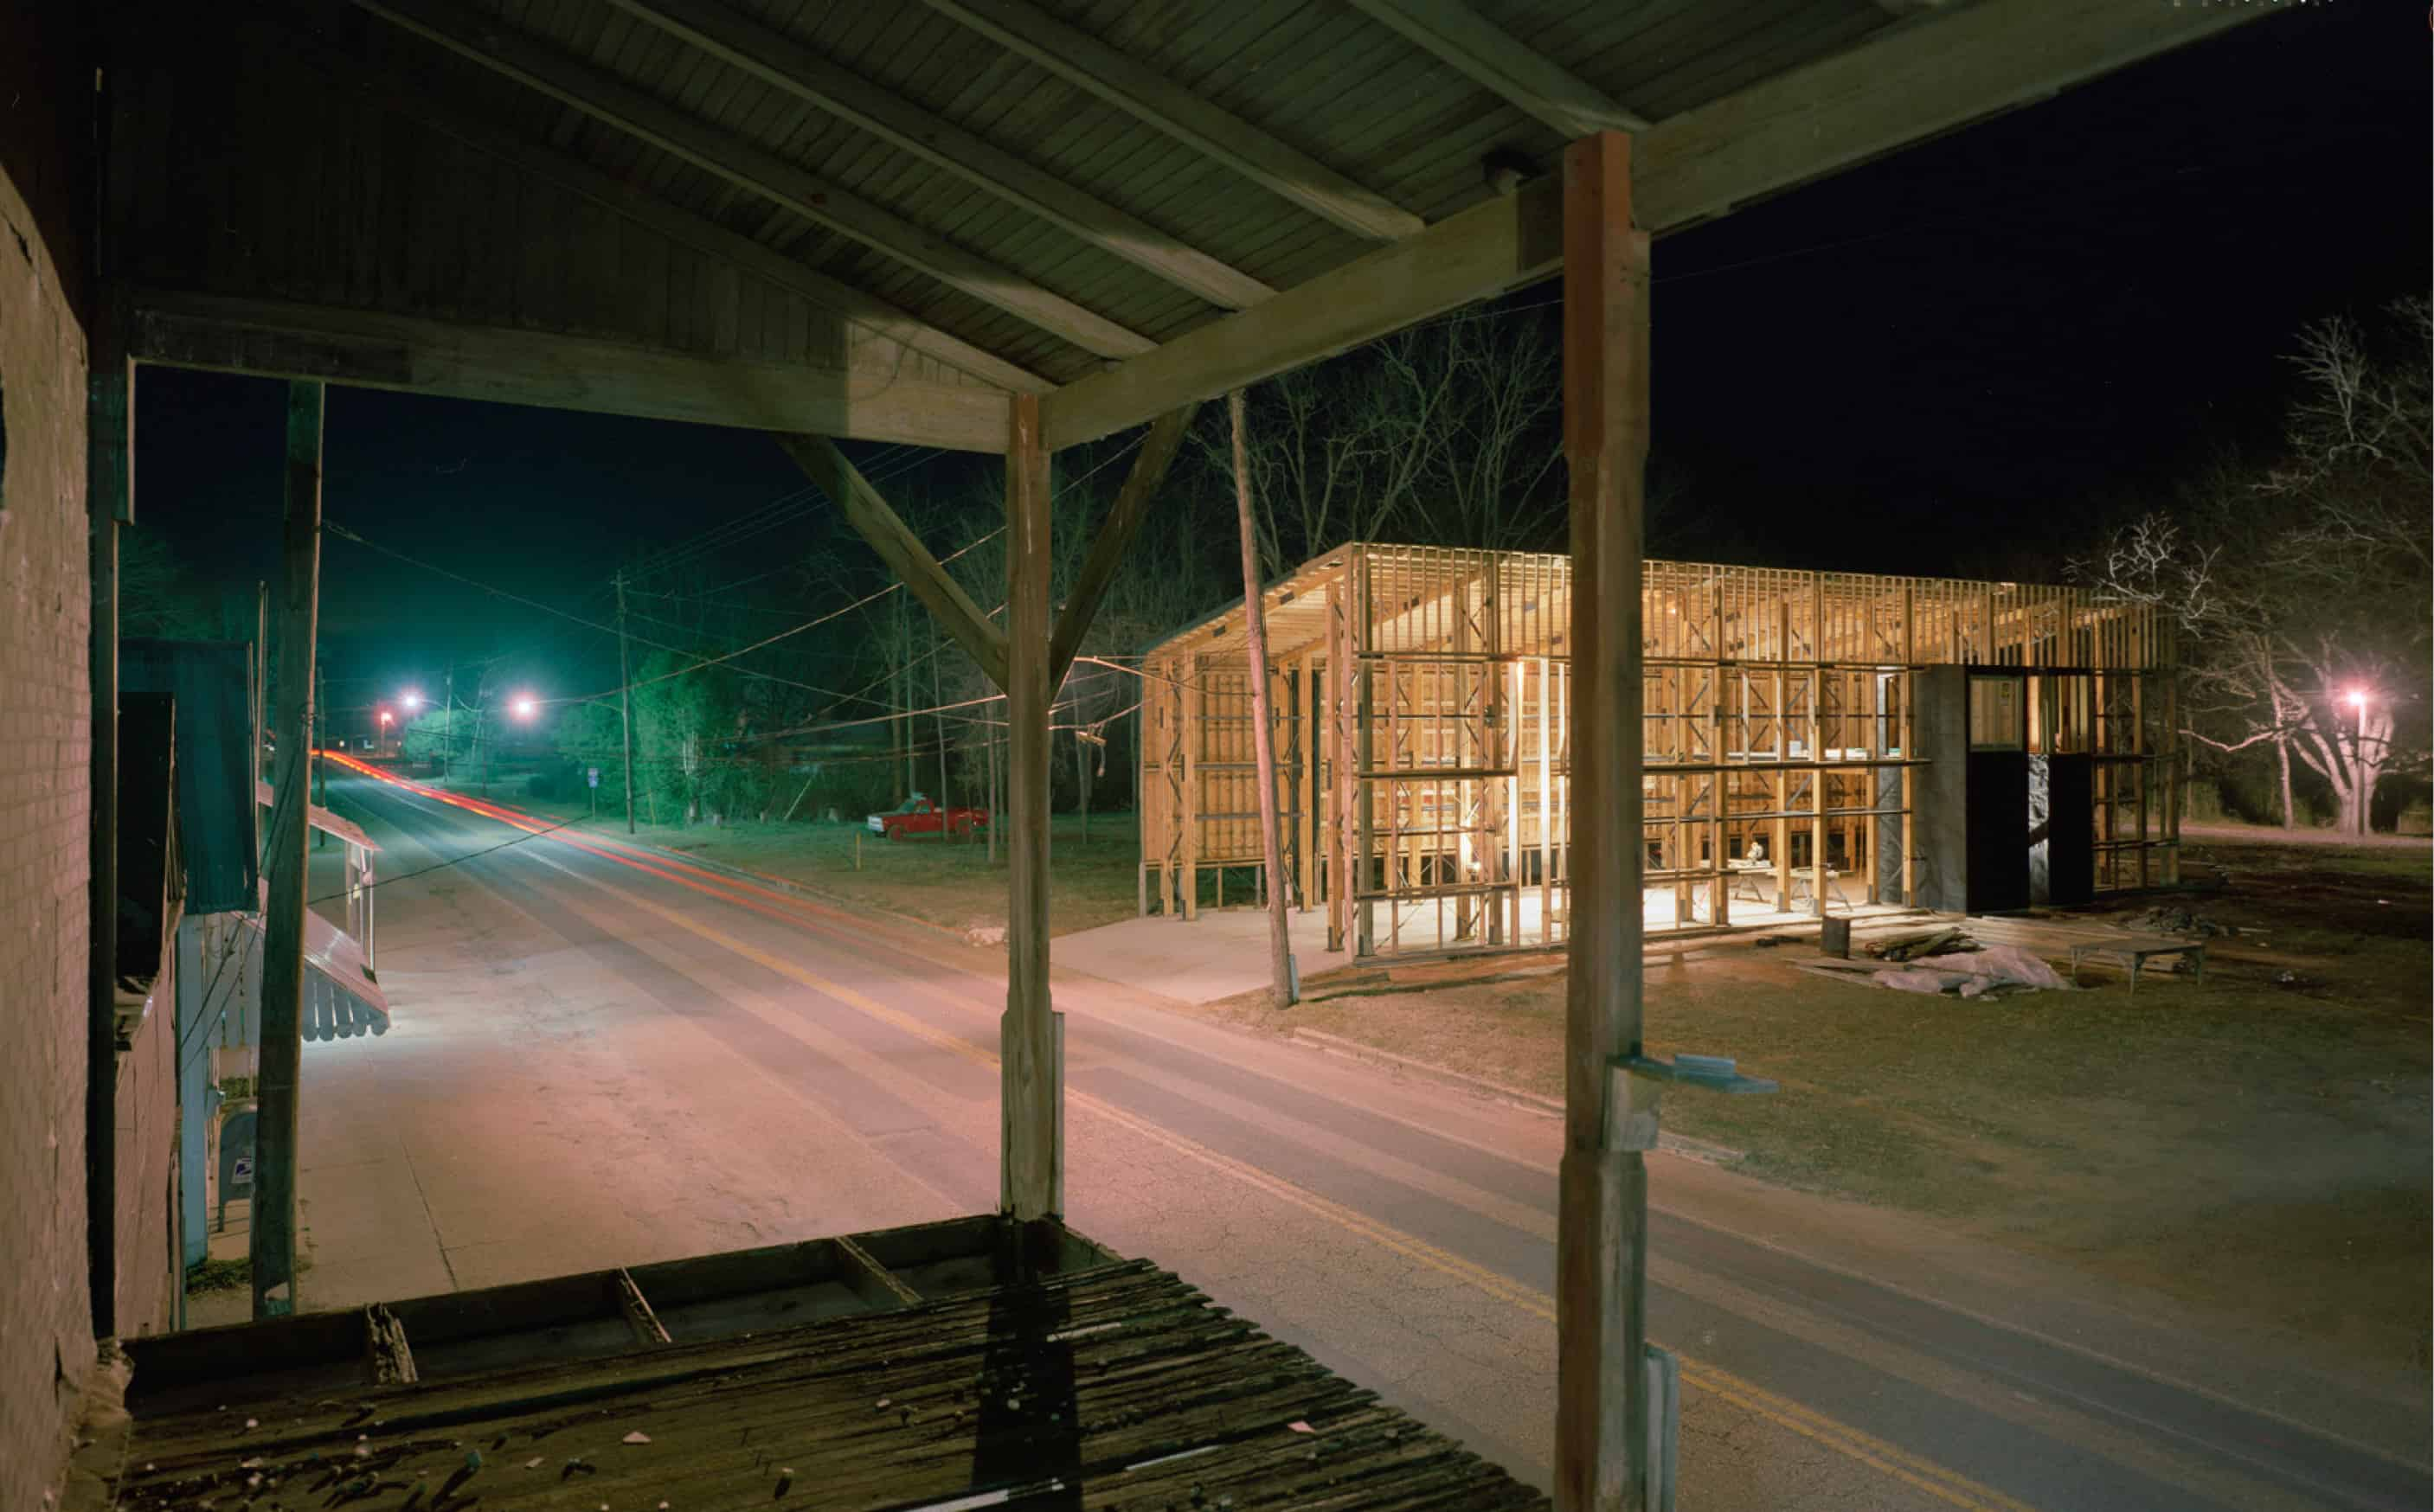 firehouse under construction at night, taken from landing of red barn